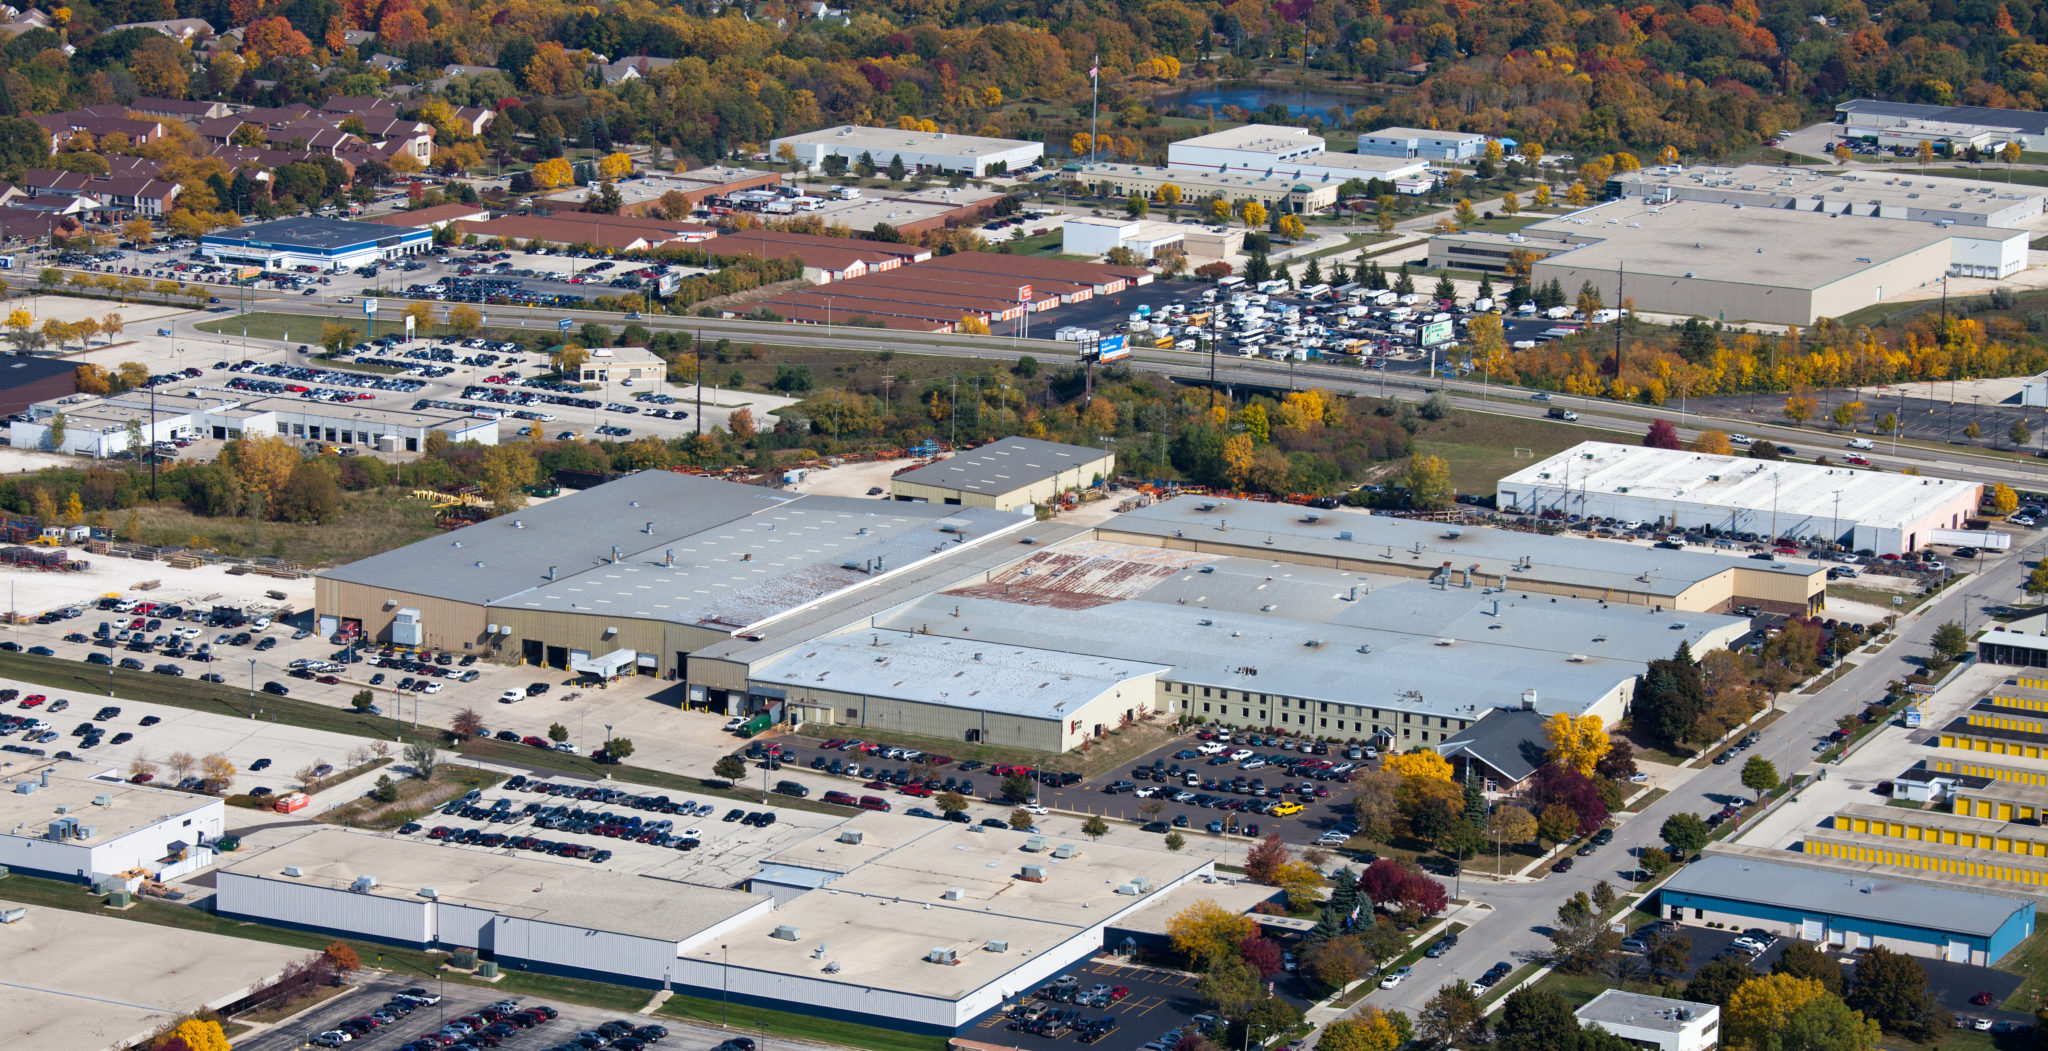 Aerial Image of Contract Manufacturing Facility